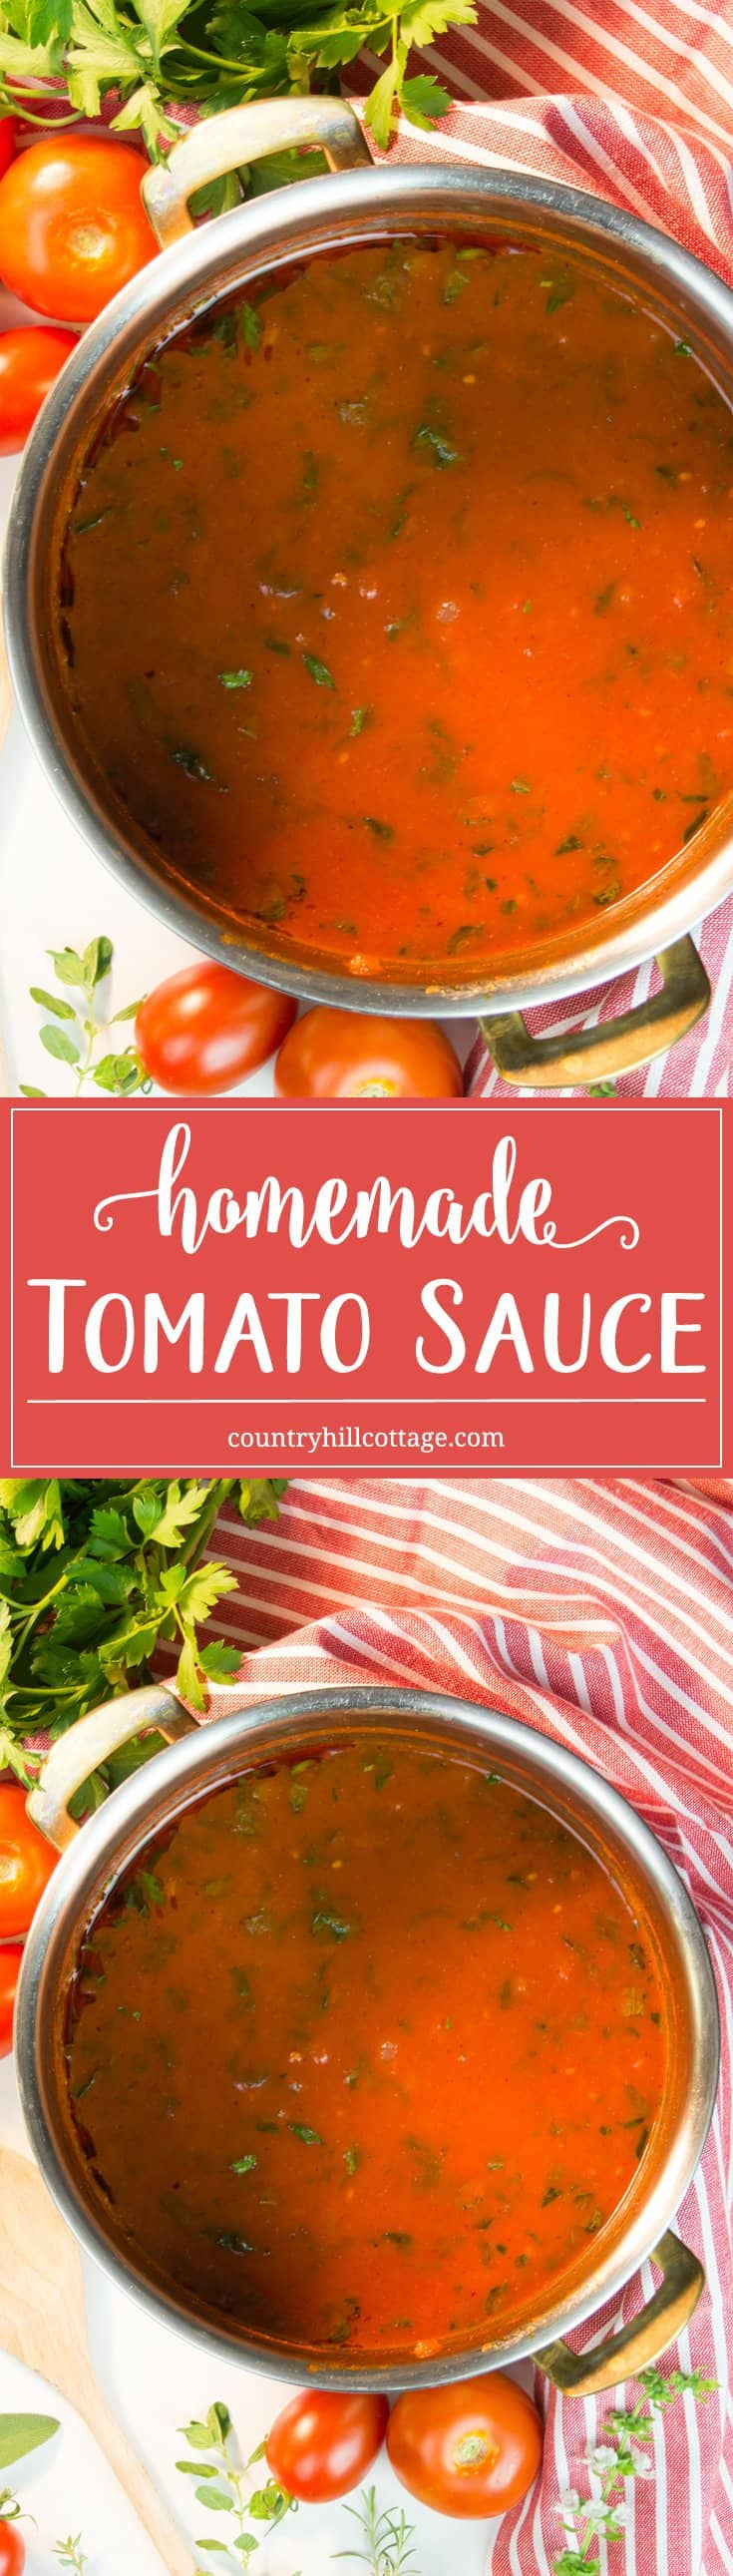 Our homemade tomato sauce is made with pre-made pasta sauce and fresh tomatoes and when it comes to seasoning, use any selection of herbs you have available, both fresh and dried. #tomatoes #tomatosauce #recipe | countryhillcottage.com